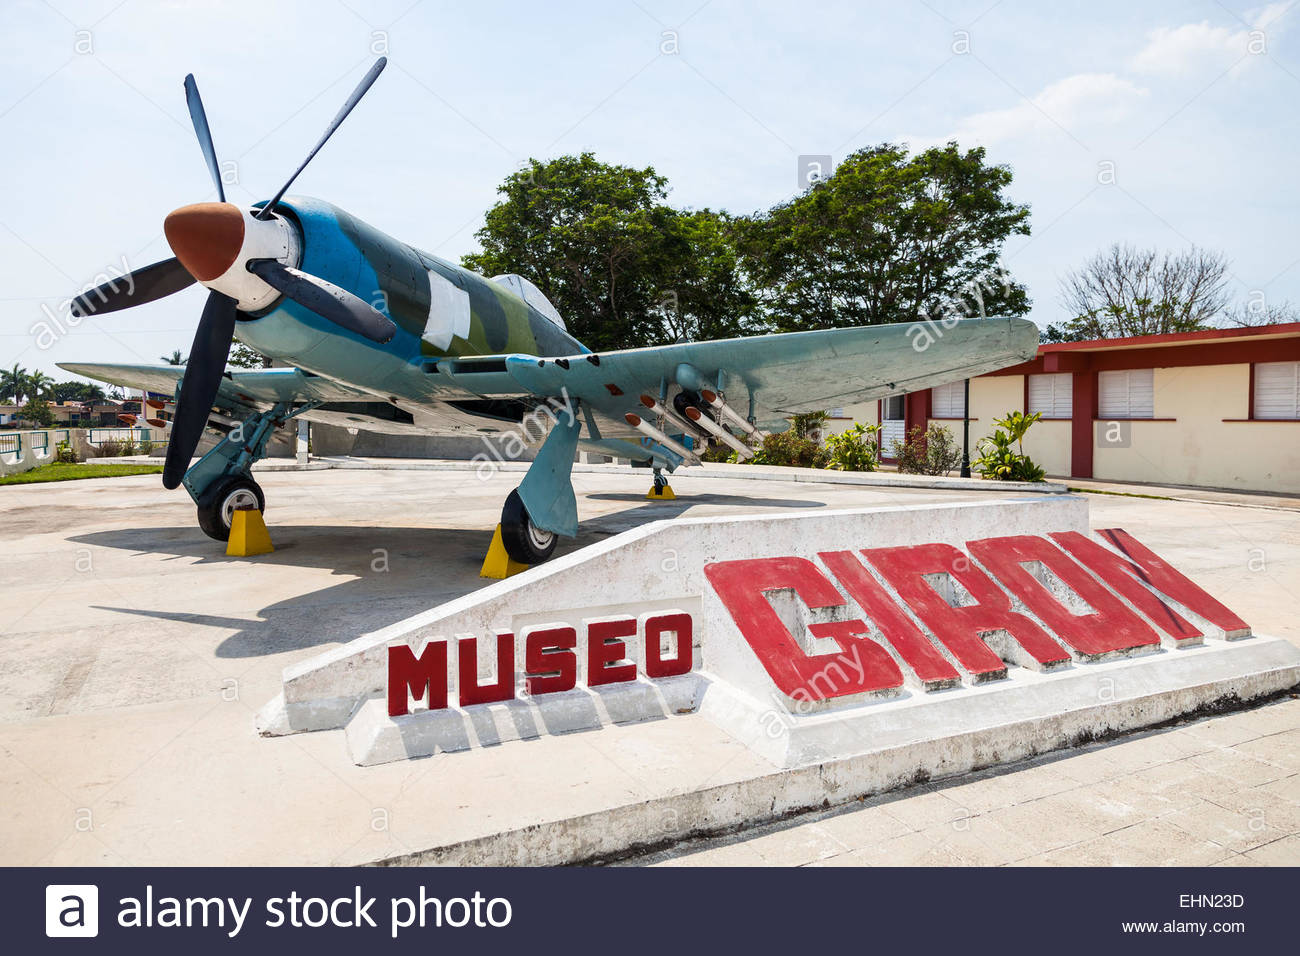 Museo Playa Girón Western Cuba, Museum of Playa Giron, Bay of Pigs, Cuba Stock Photo, Royalty Free ...